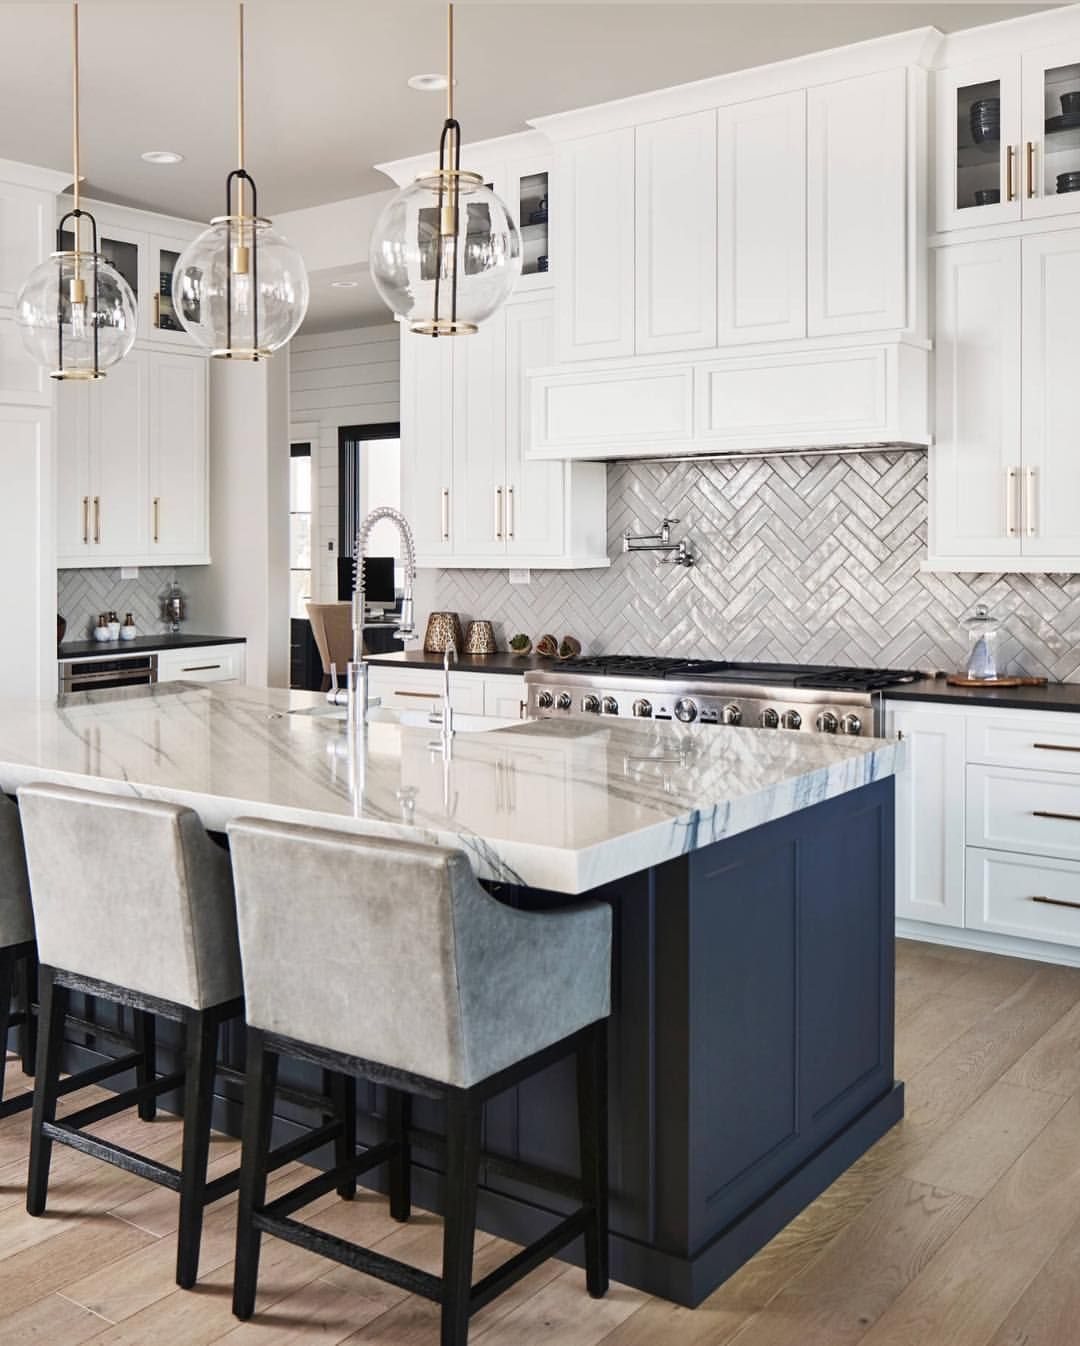 25 Absolutely Gorgeous Transitional Style Kitchen Ideas: Swipe Left ⏪⏪ To See This Gorgeous Kitchen Up Close